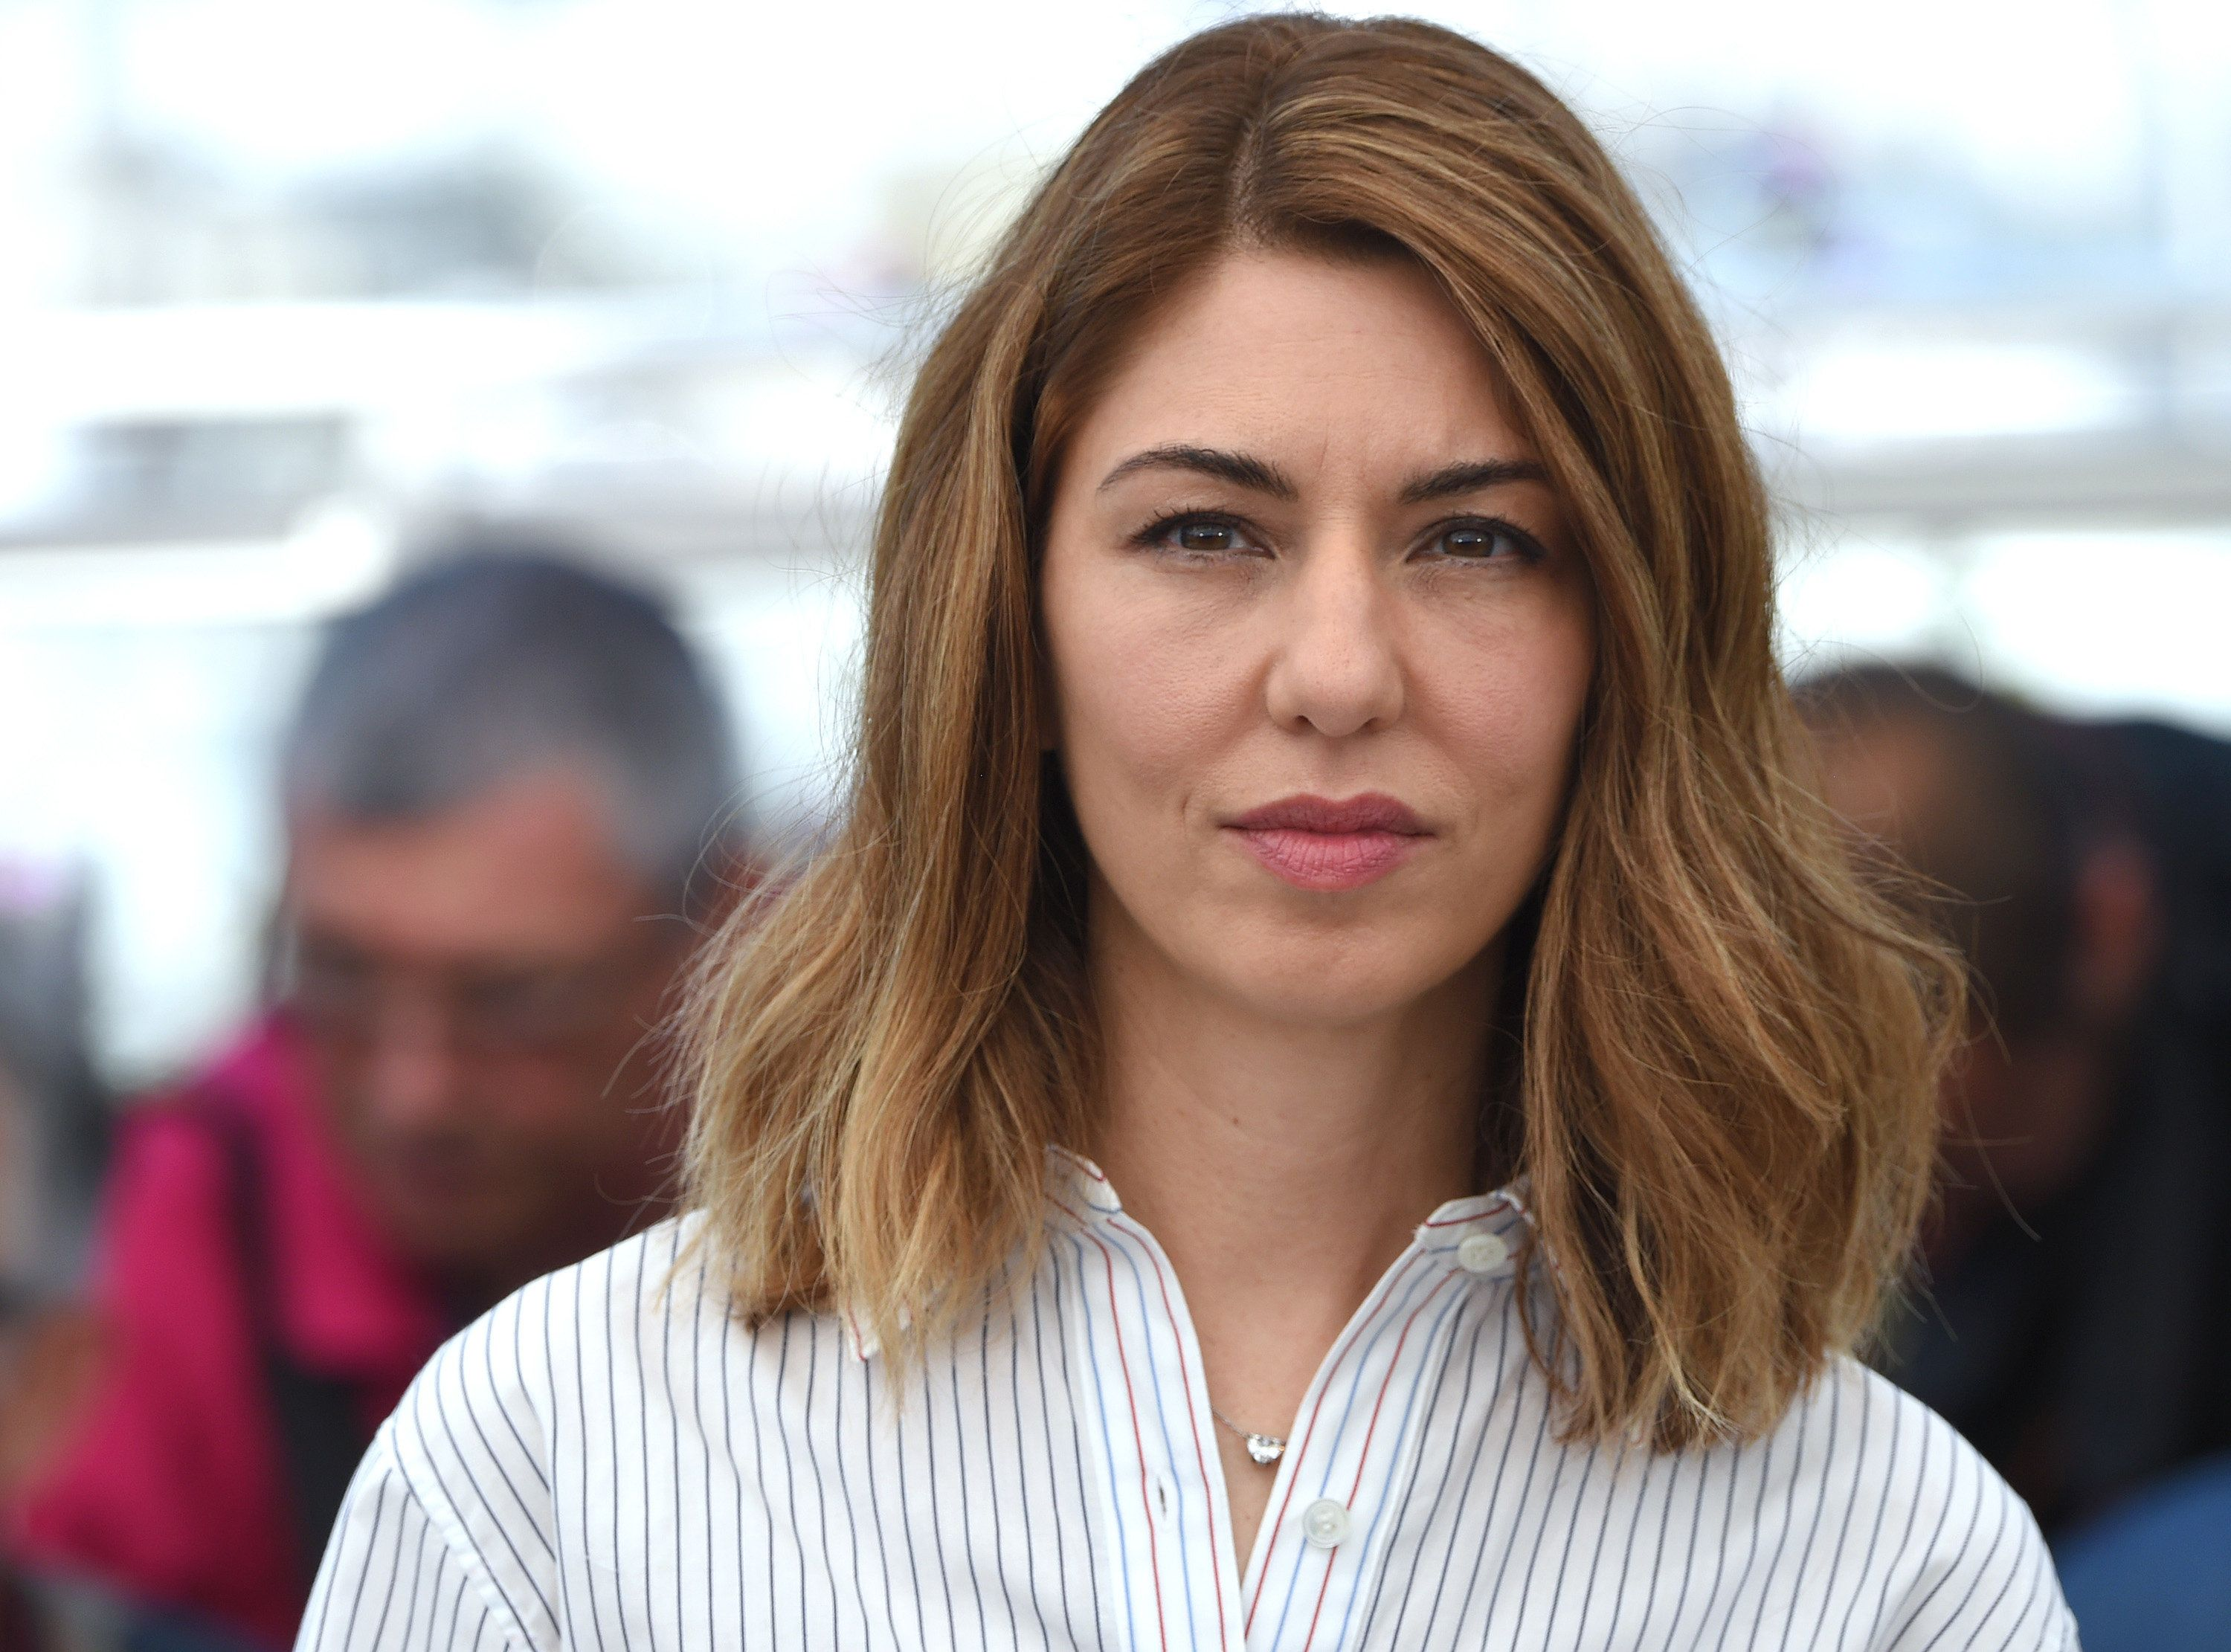 Sofia Coppola at the Cannes Film Festival.